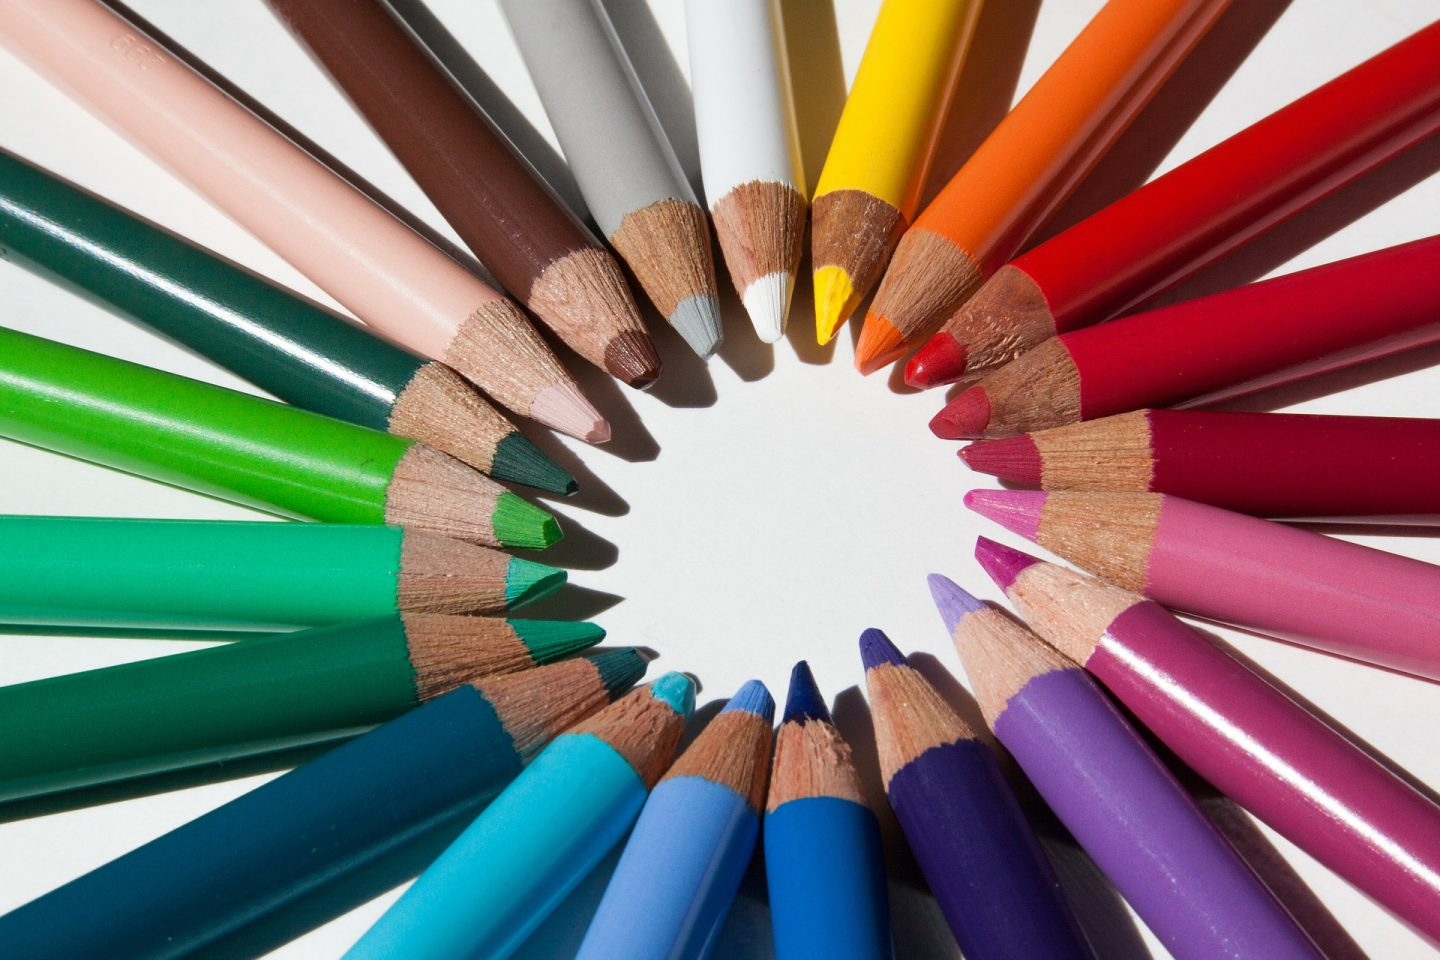 Ways of venues to be more family friendly- colouring pencils and crayons